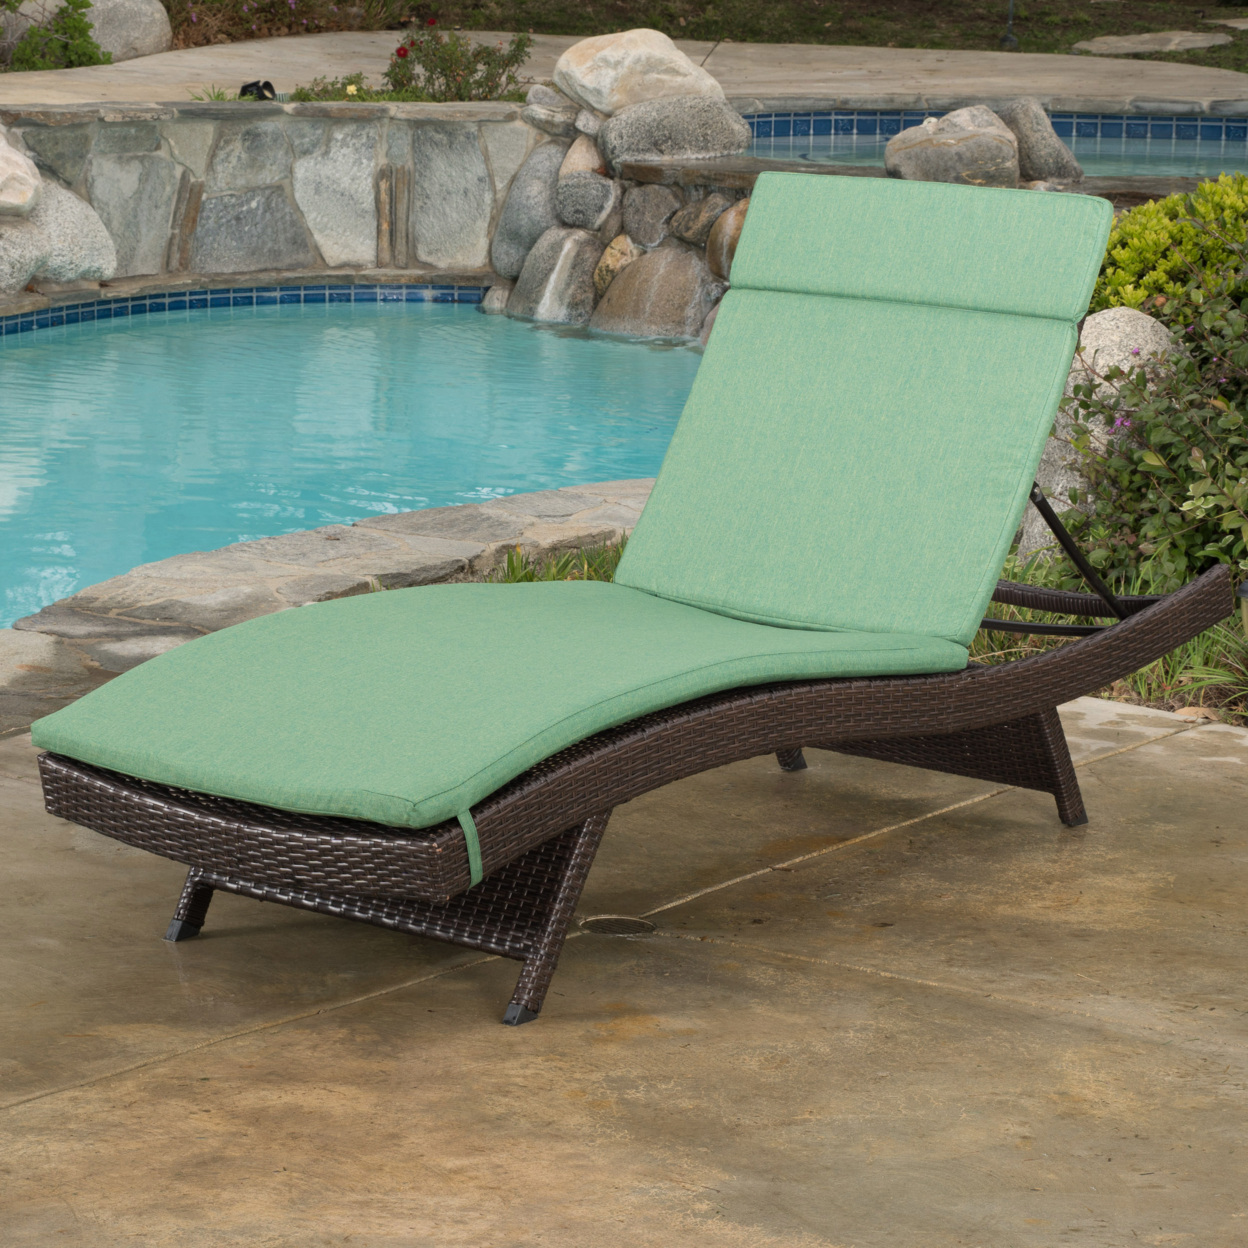 Lakeport Outdoor Adjustable Chaise Lounge Chair w/ Cushion (3)